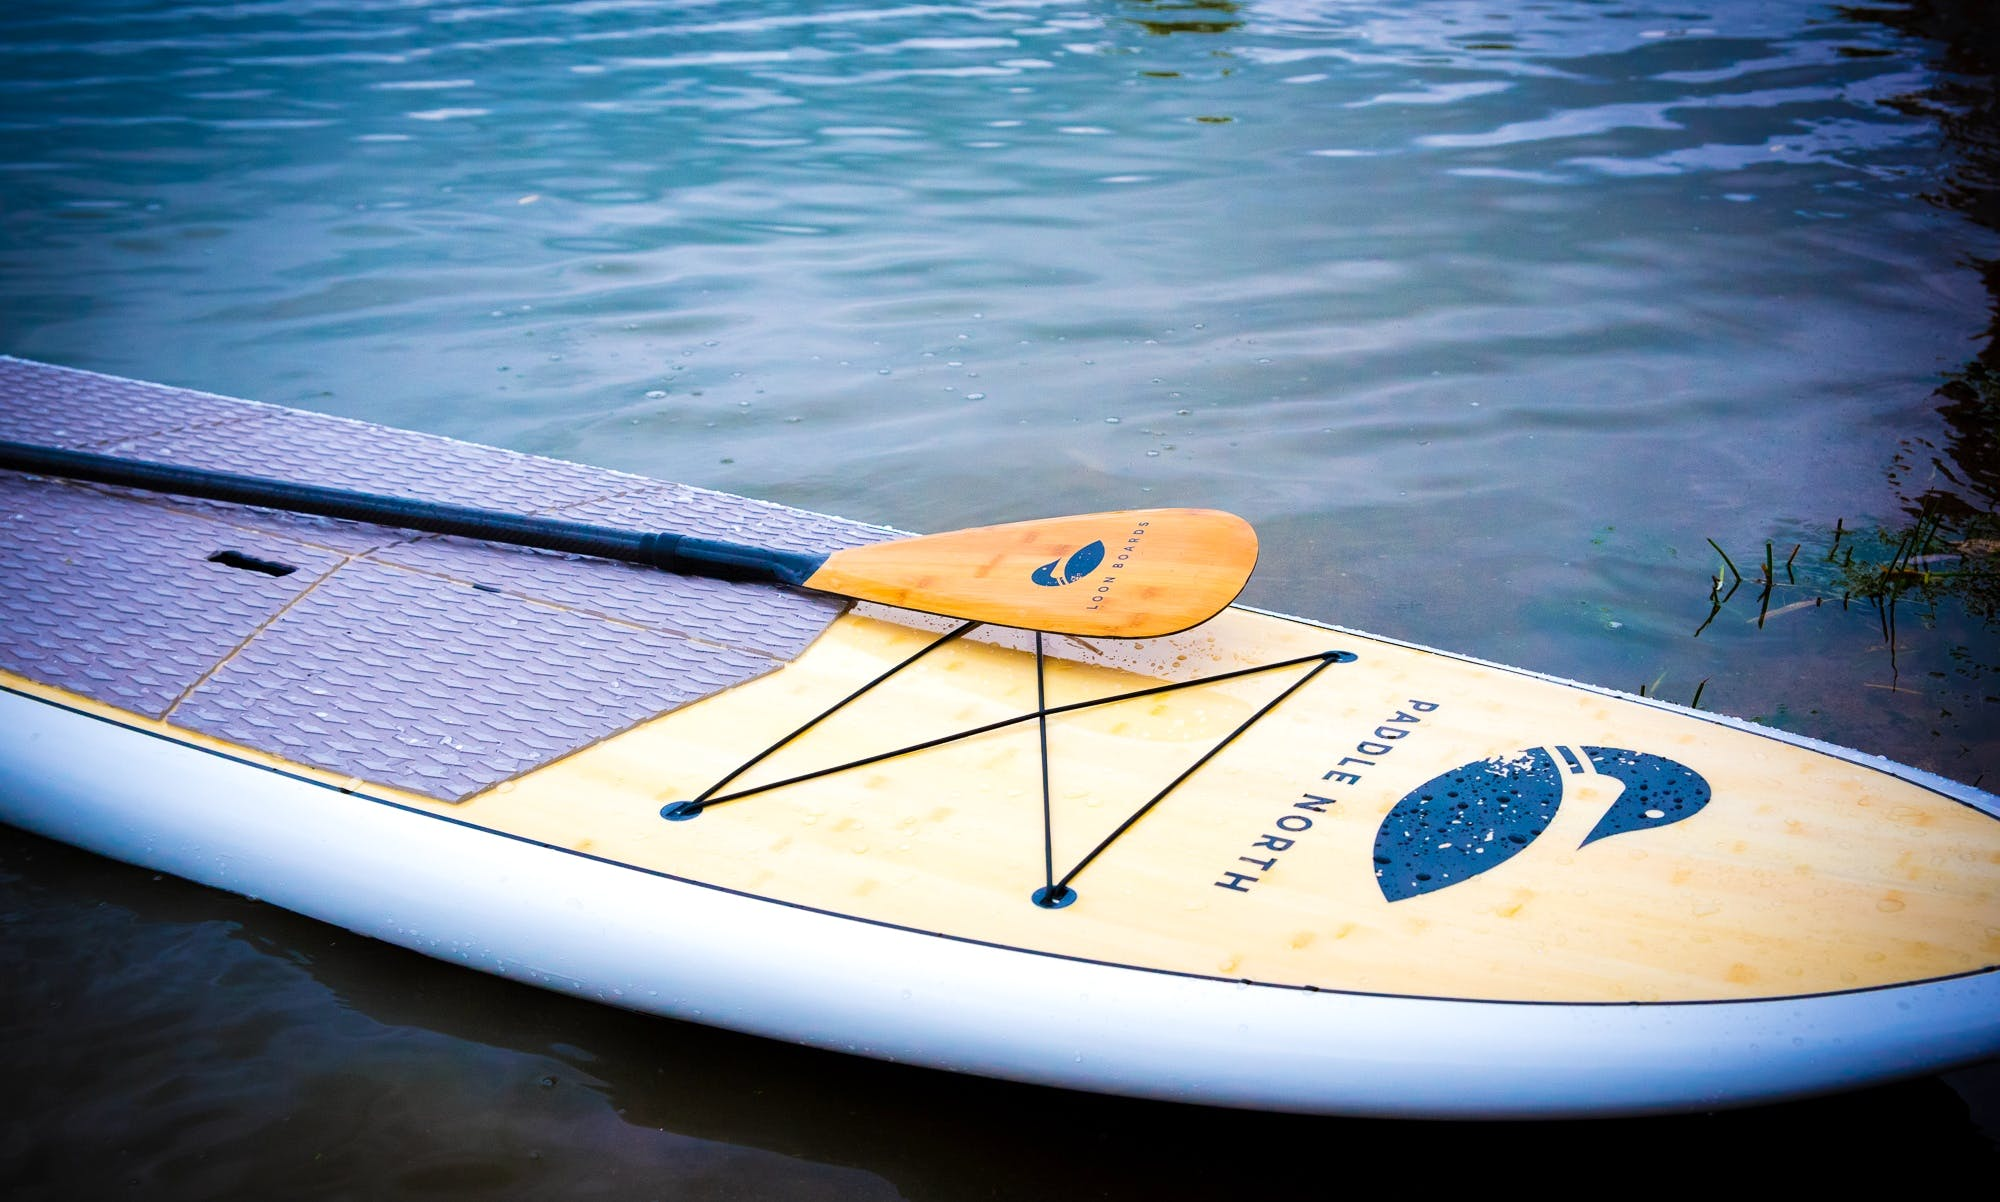 Paddle Board Rental in Blaine, Minnesota with Car Rack